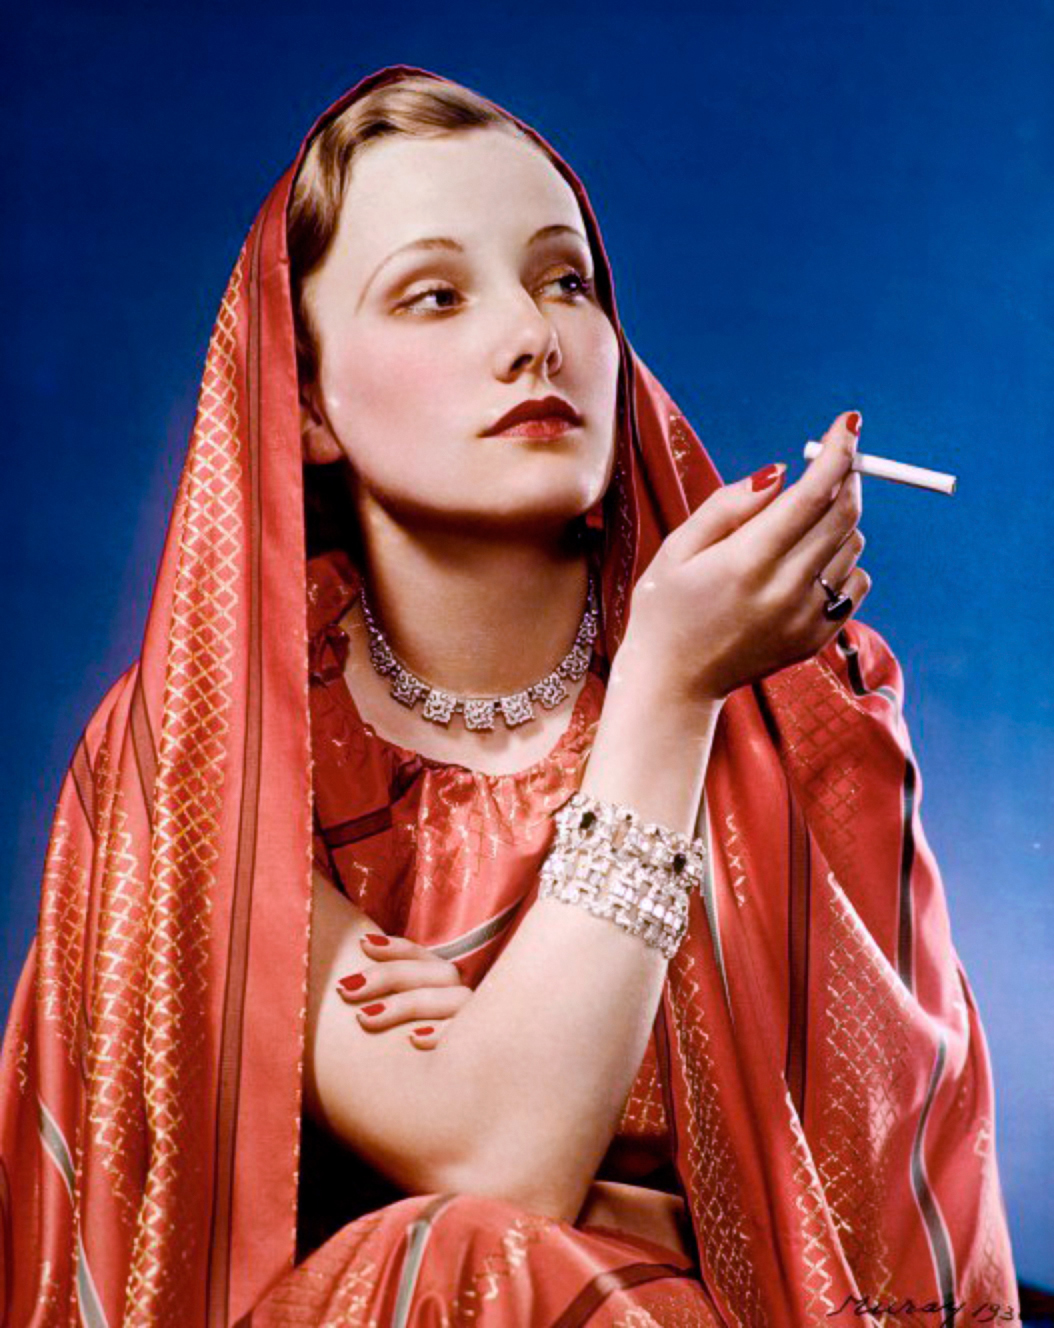 Girl in Red, 1936 photo for Lucky Strike Cigarette. Image via Wikipedia.